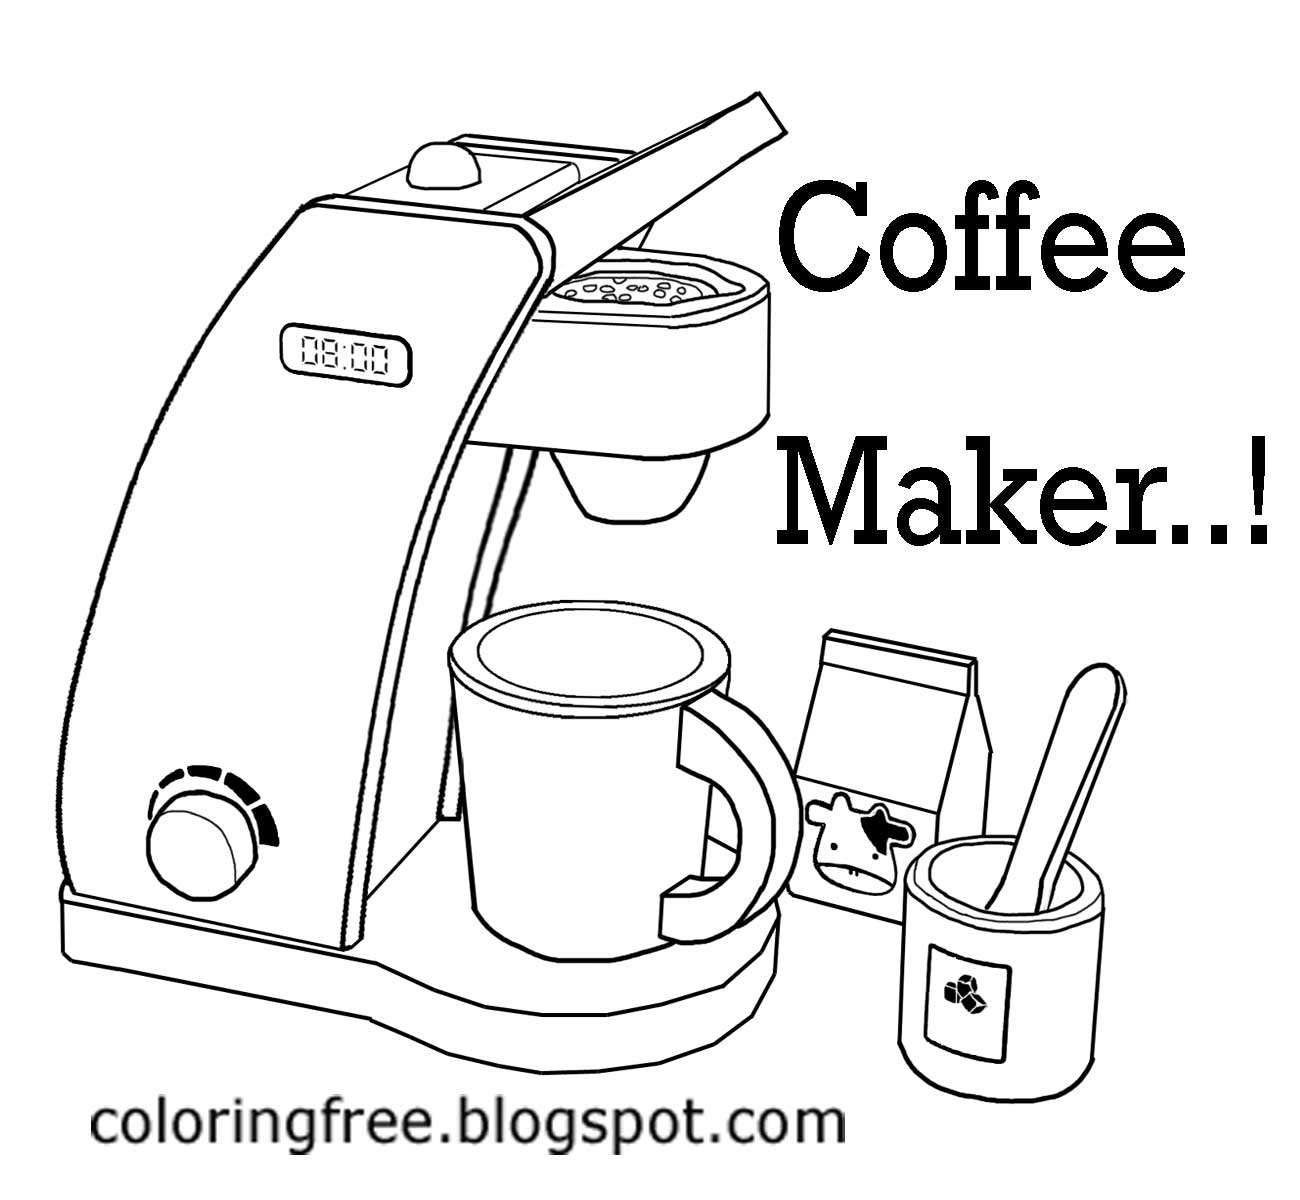 Coloring Pages To Color Online For Free Free Coloring Pages Printable Pictures To Color Kids Drawing Ideas